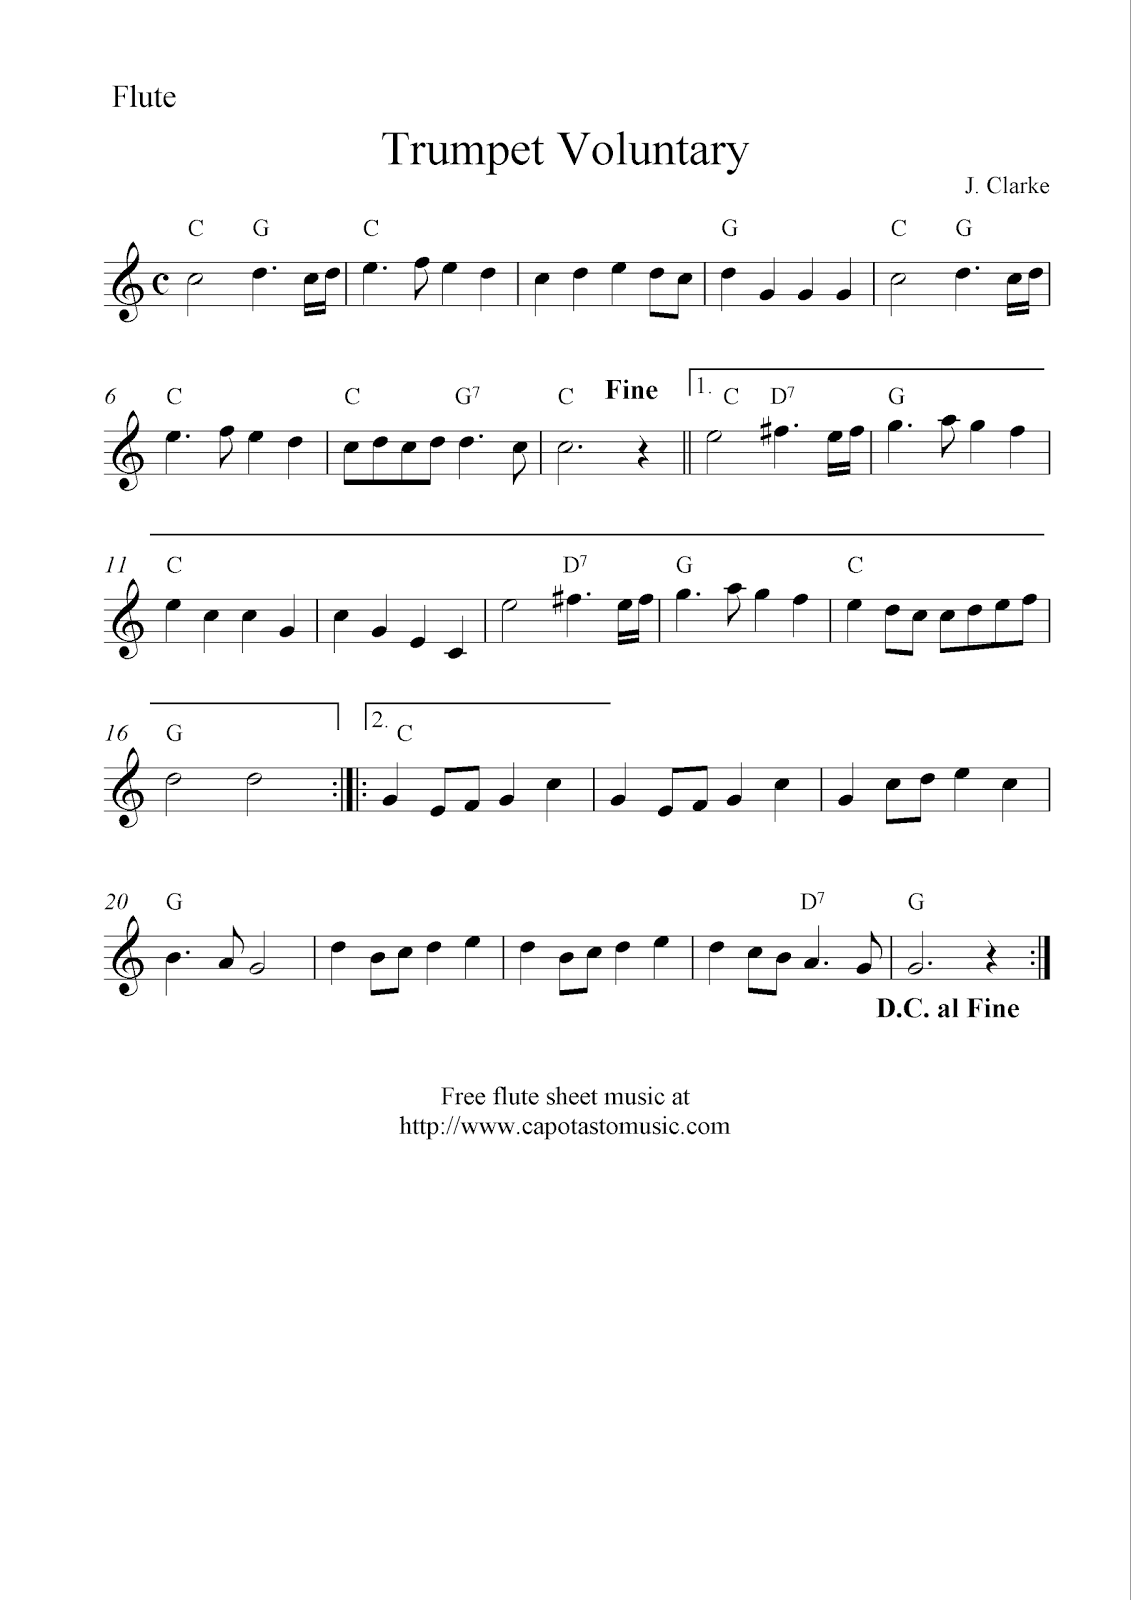 Trumpet voluntary free flute sheet music notes